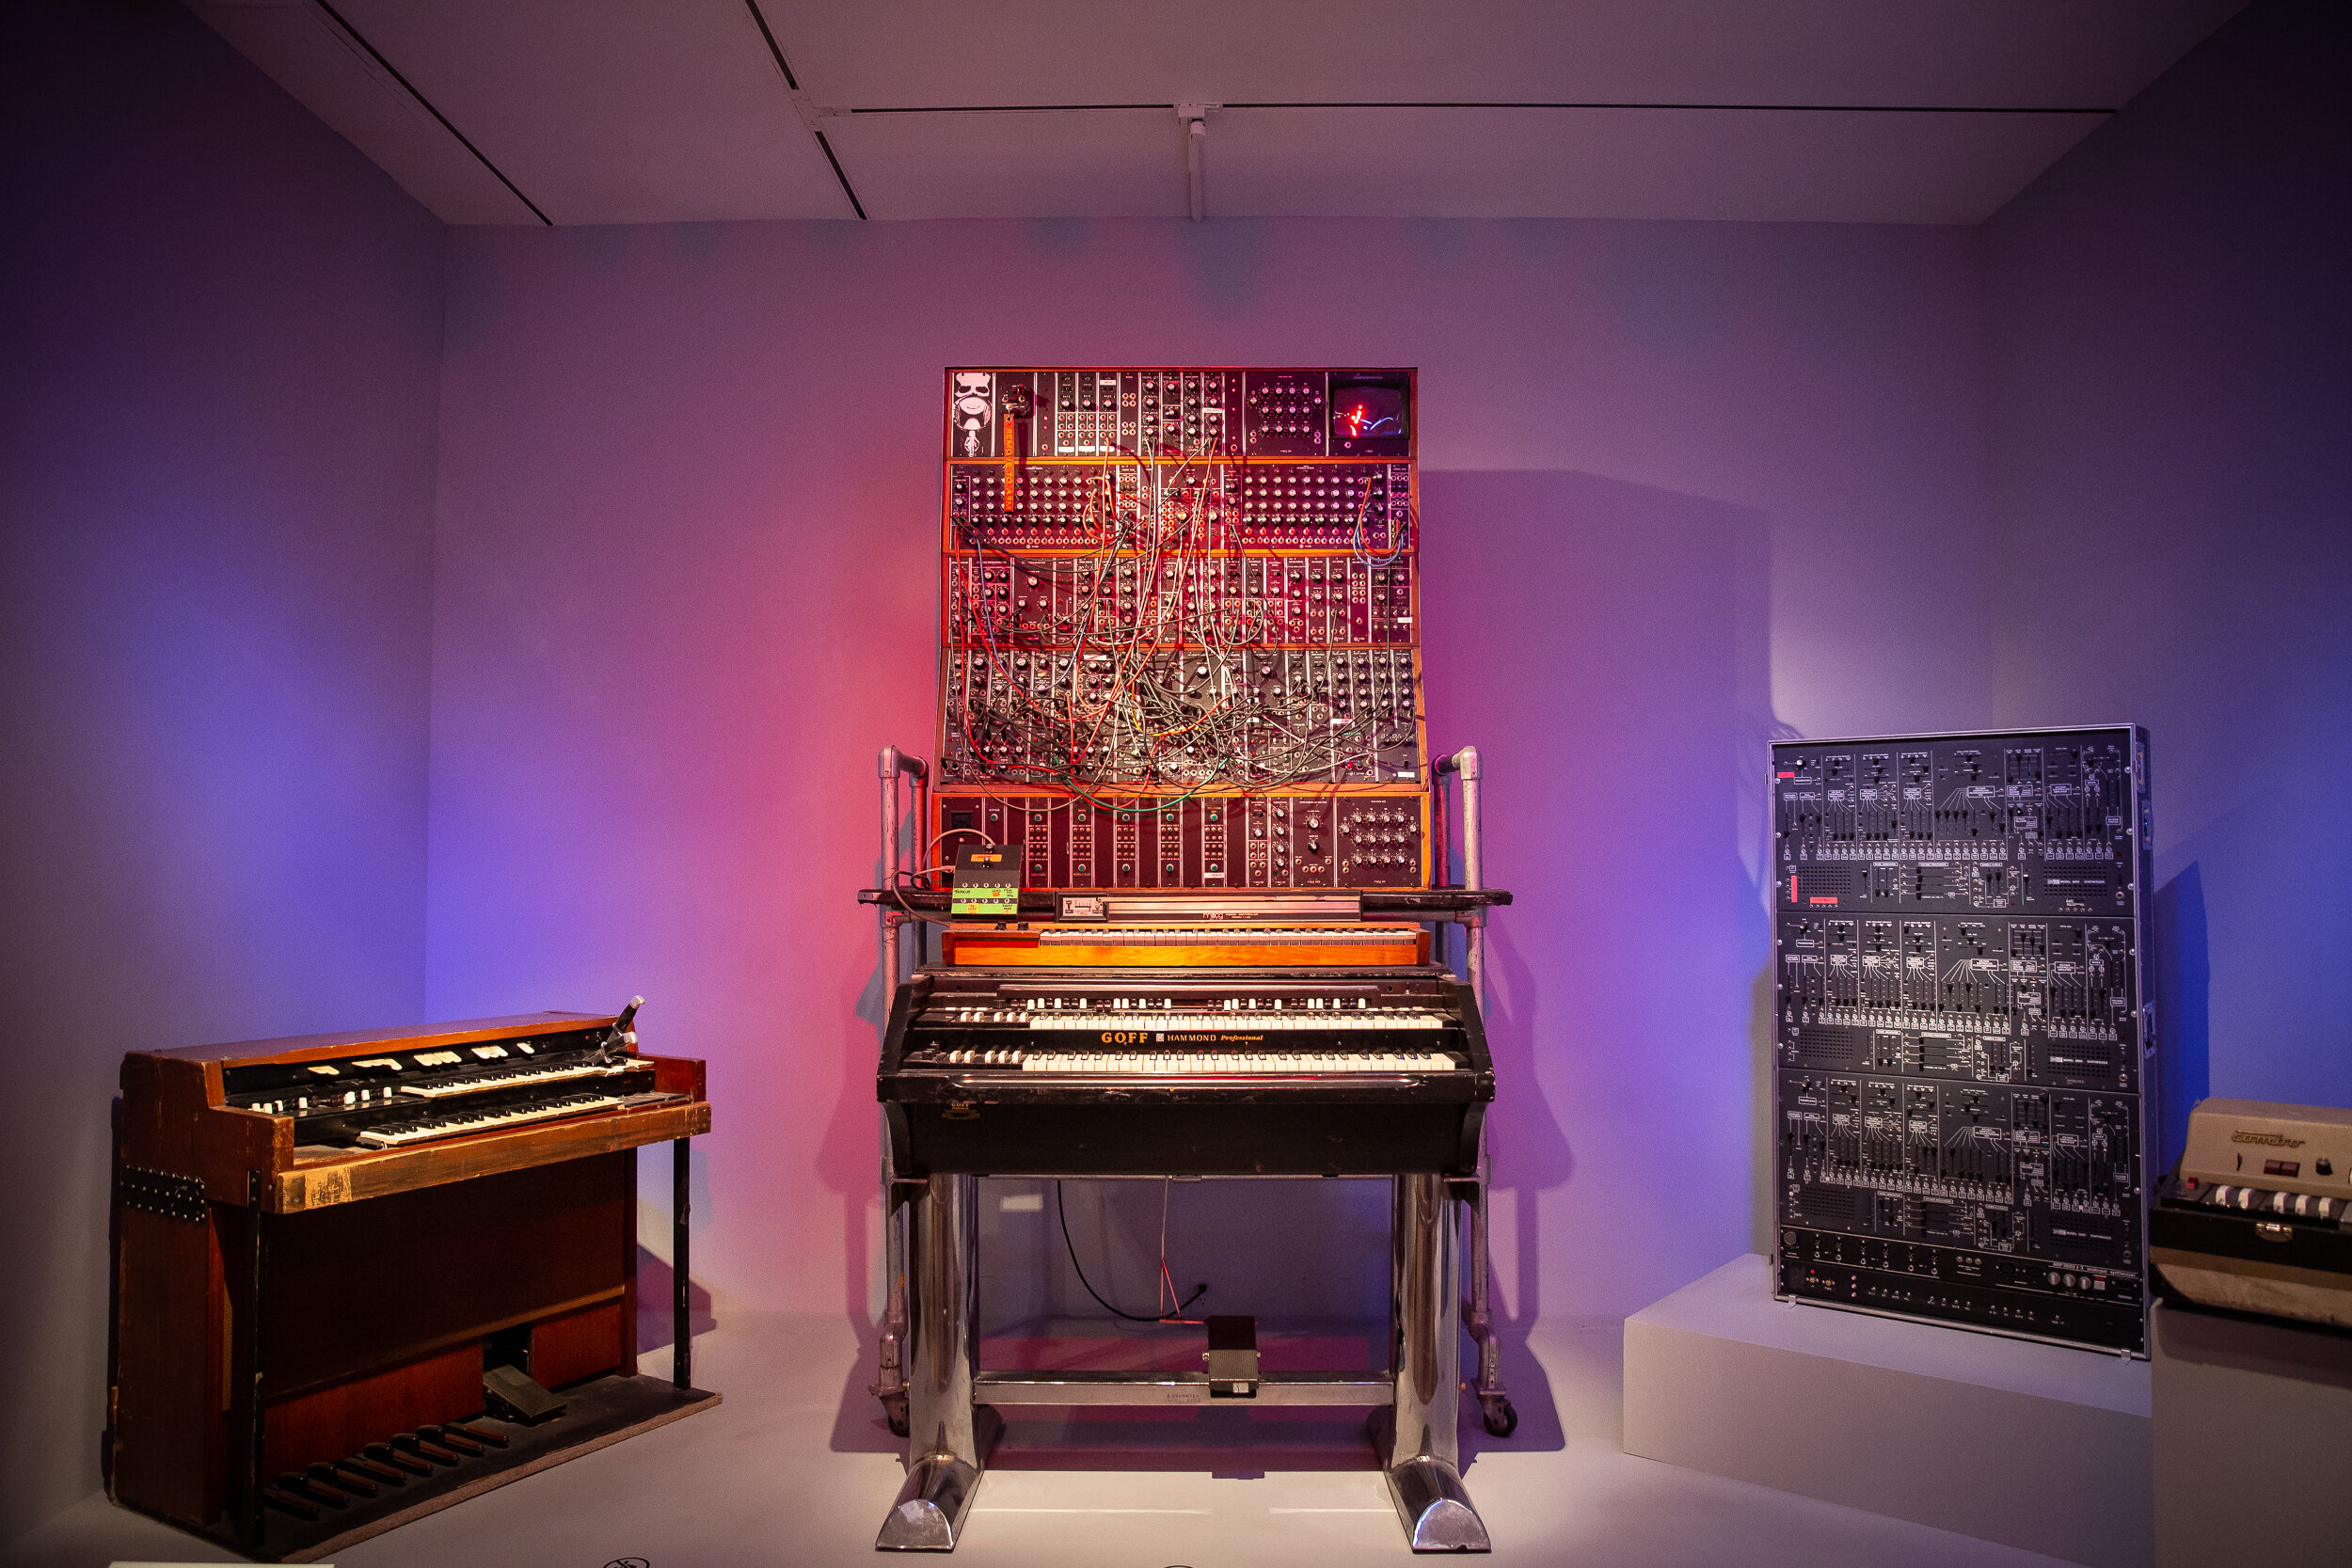 Keith Emerson's instrument park at The Metropolitan Museum of Art